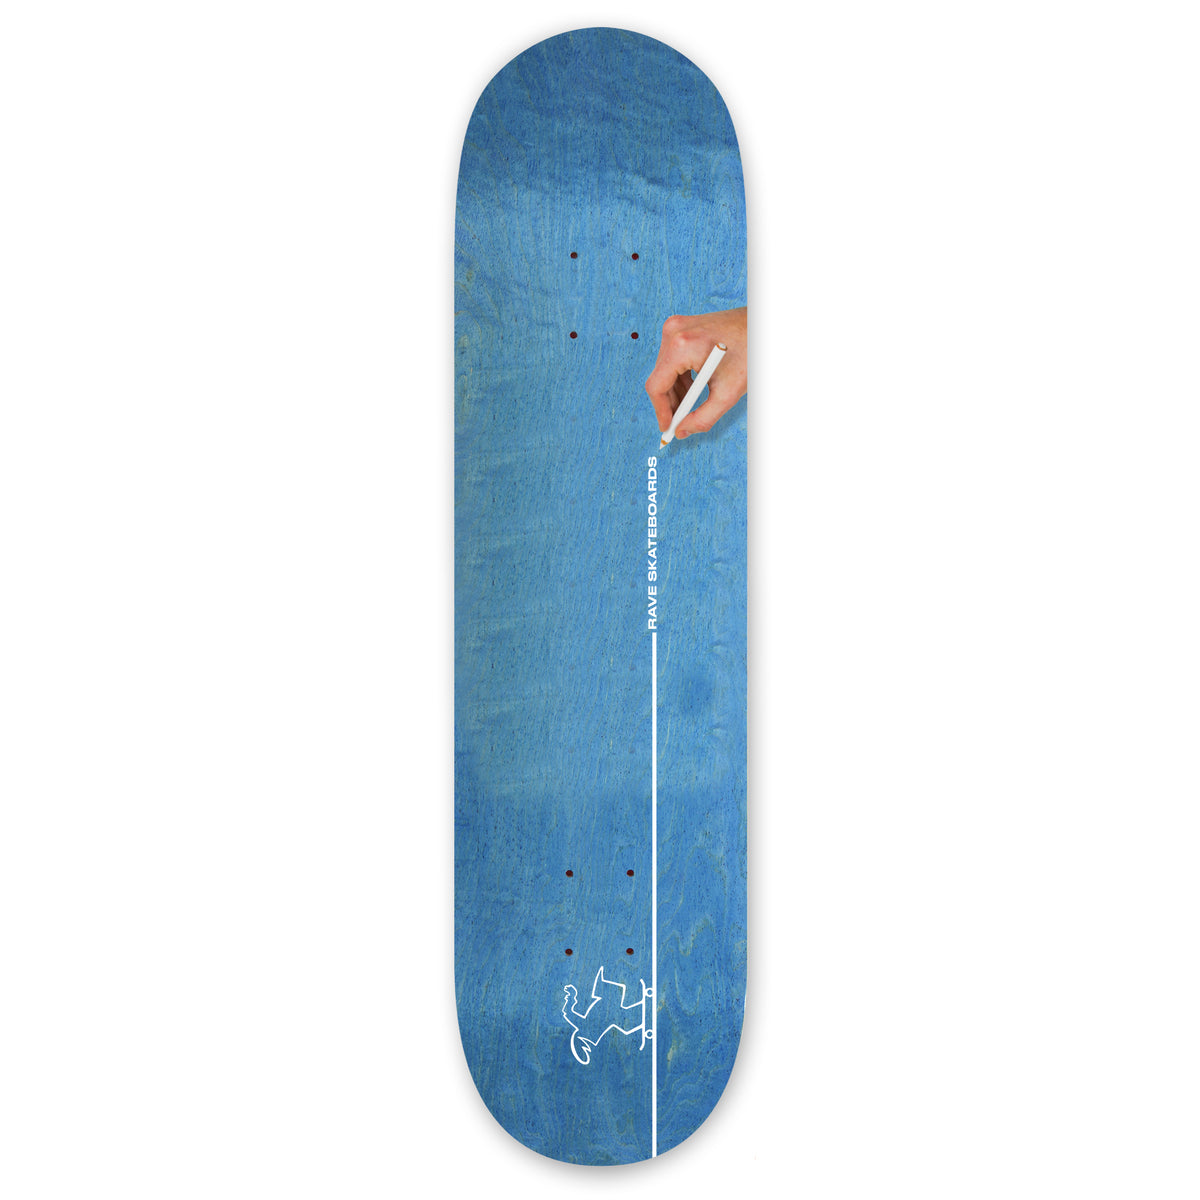 CAVENDOLI board - RAVE skateboards